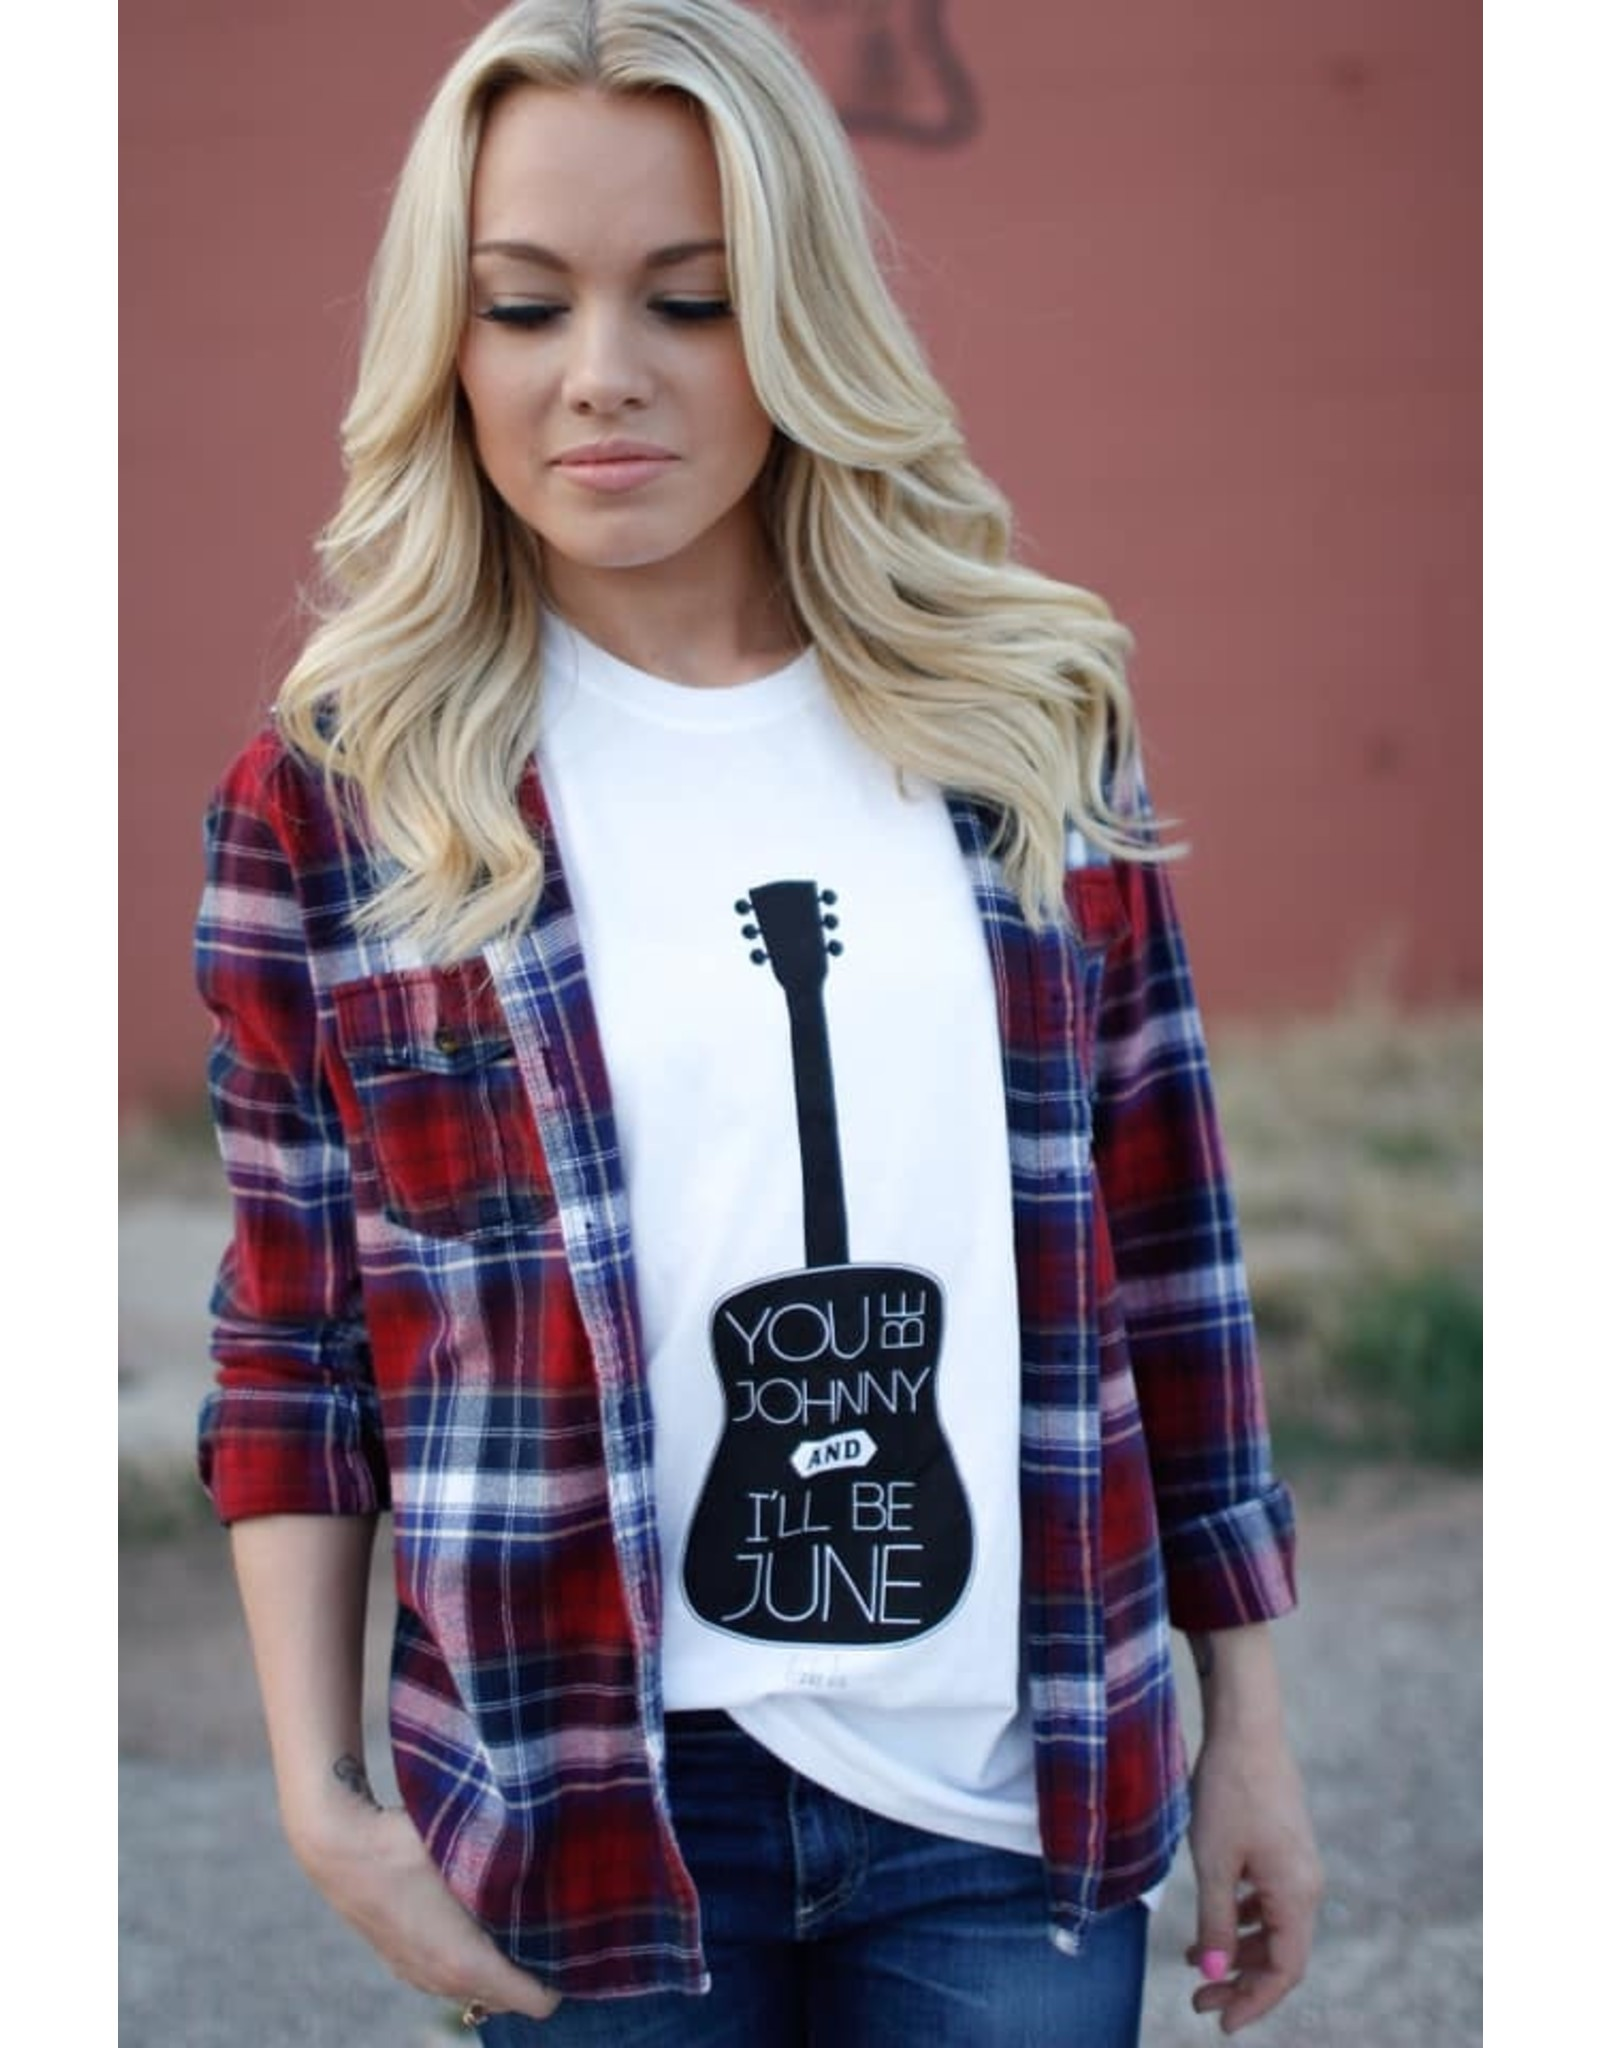 Relish Johnny & June Tee